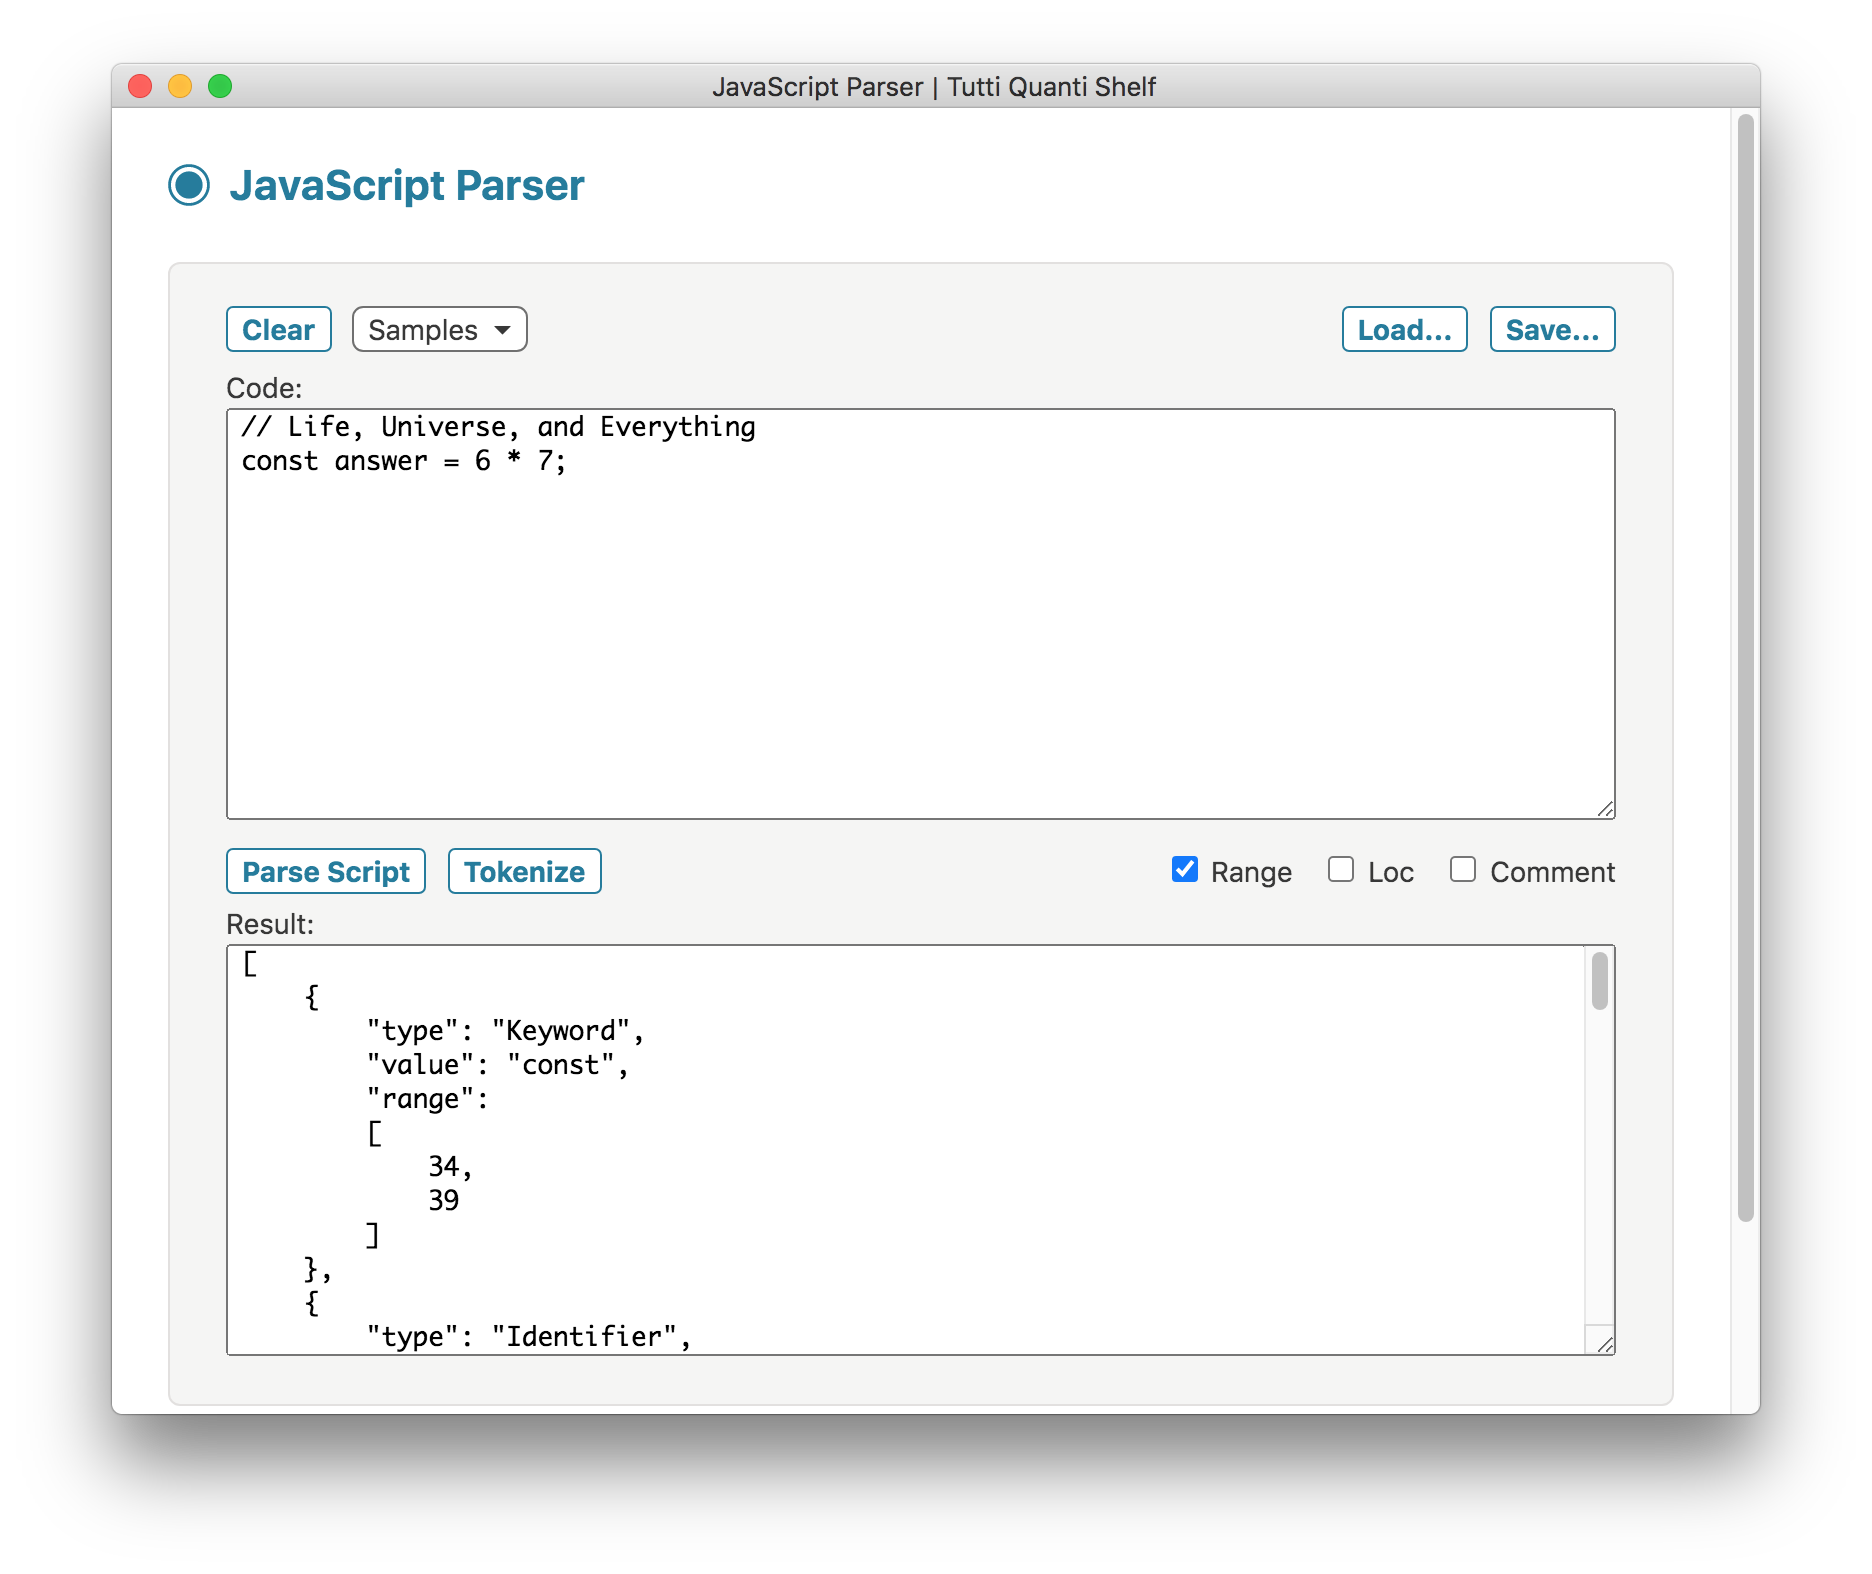 JavaScript Parser screenshot